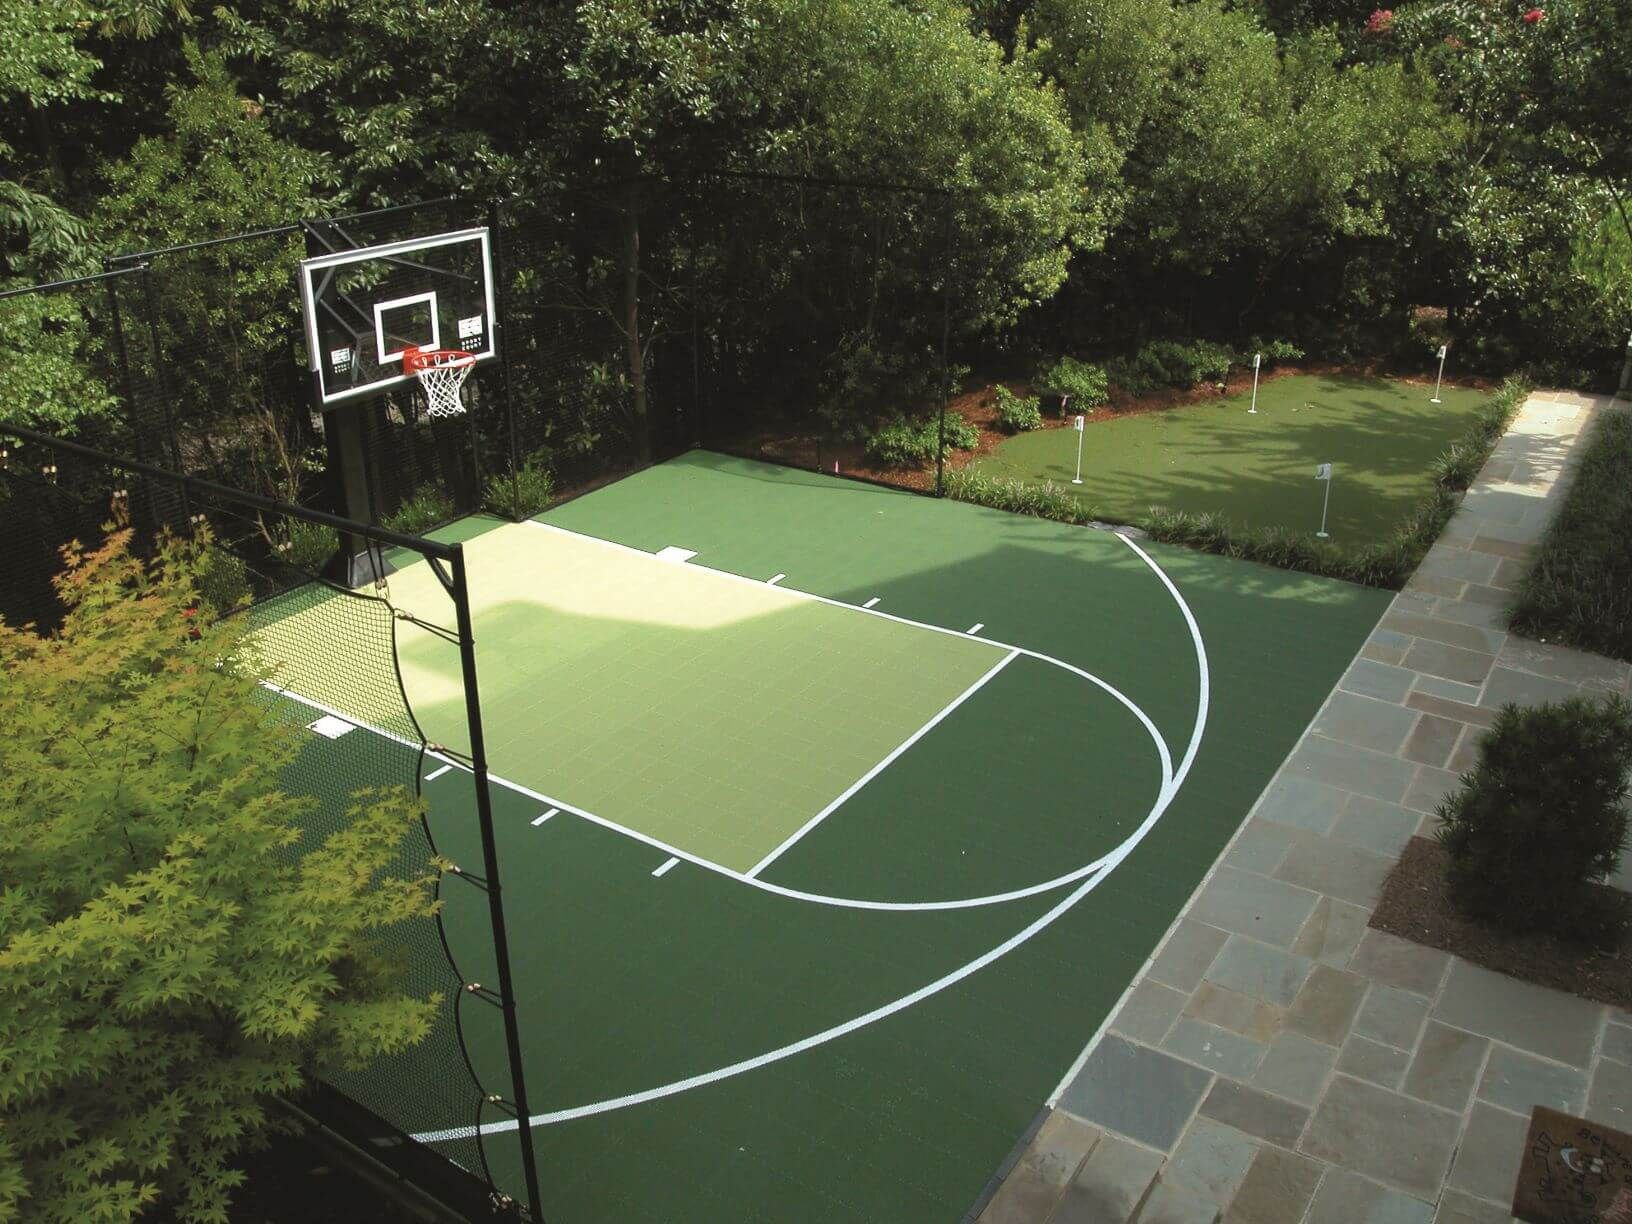 22 Genius Concepts Of How To Makeover Backyard Sport Court Ideas Basketball Court Backyard Backyard Court Home Basketball Court